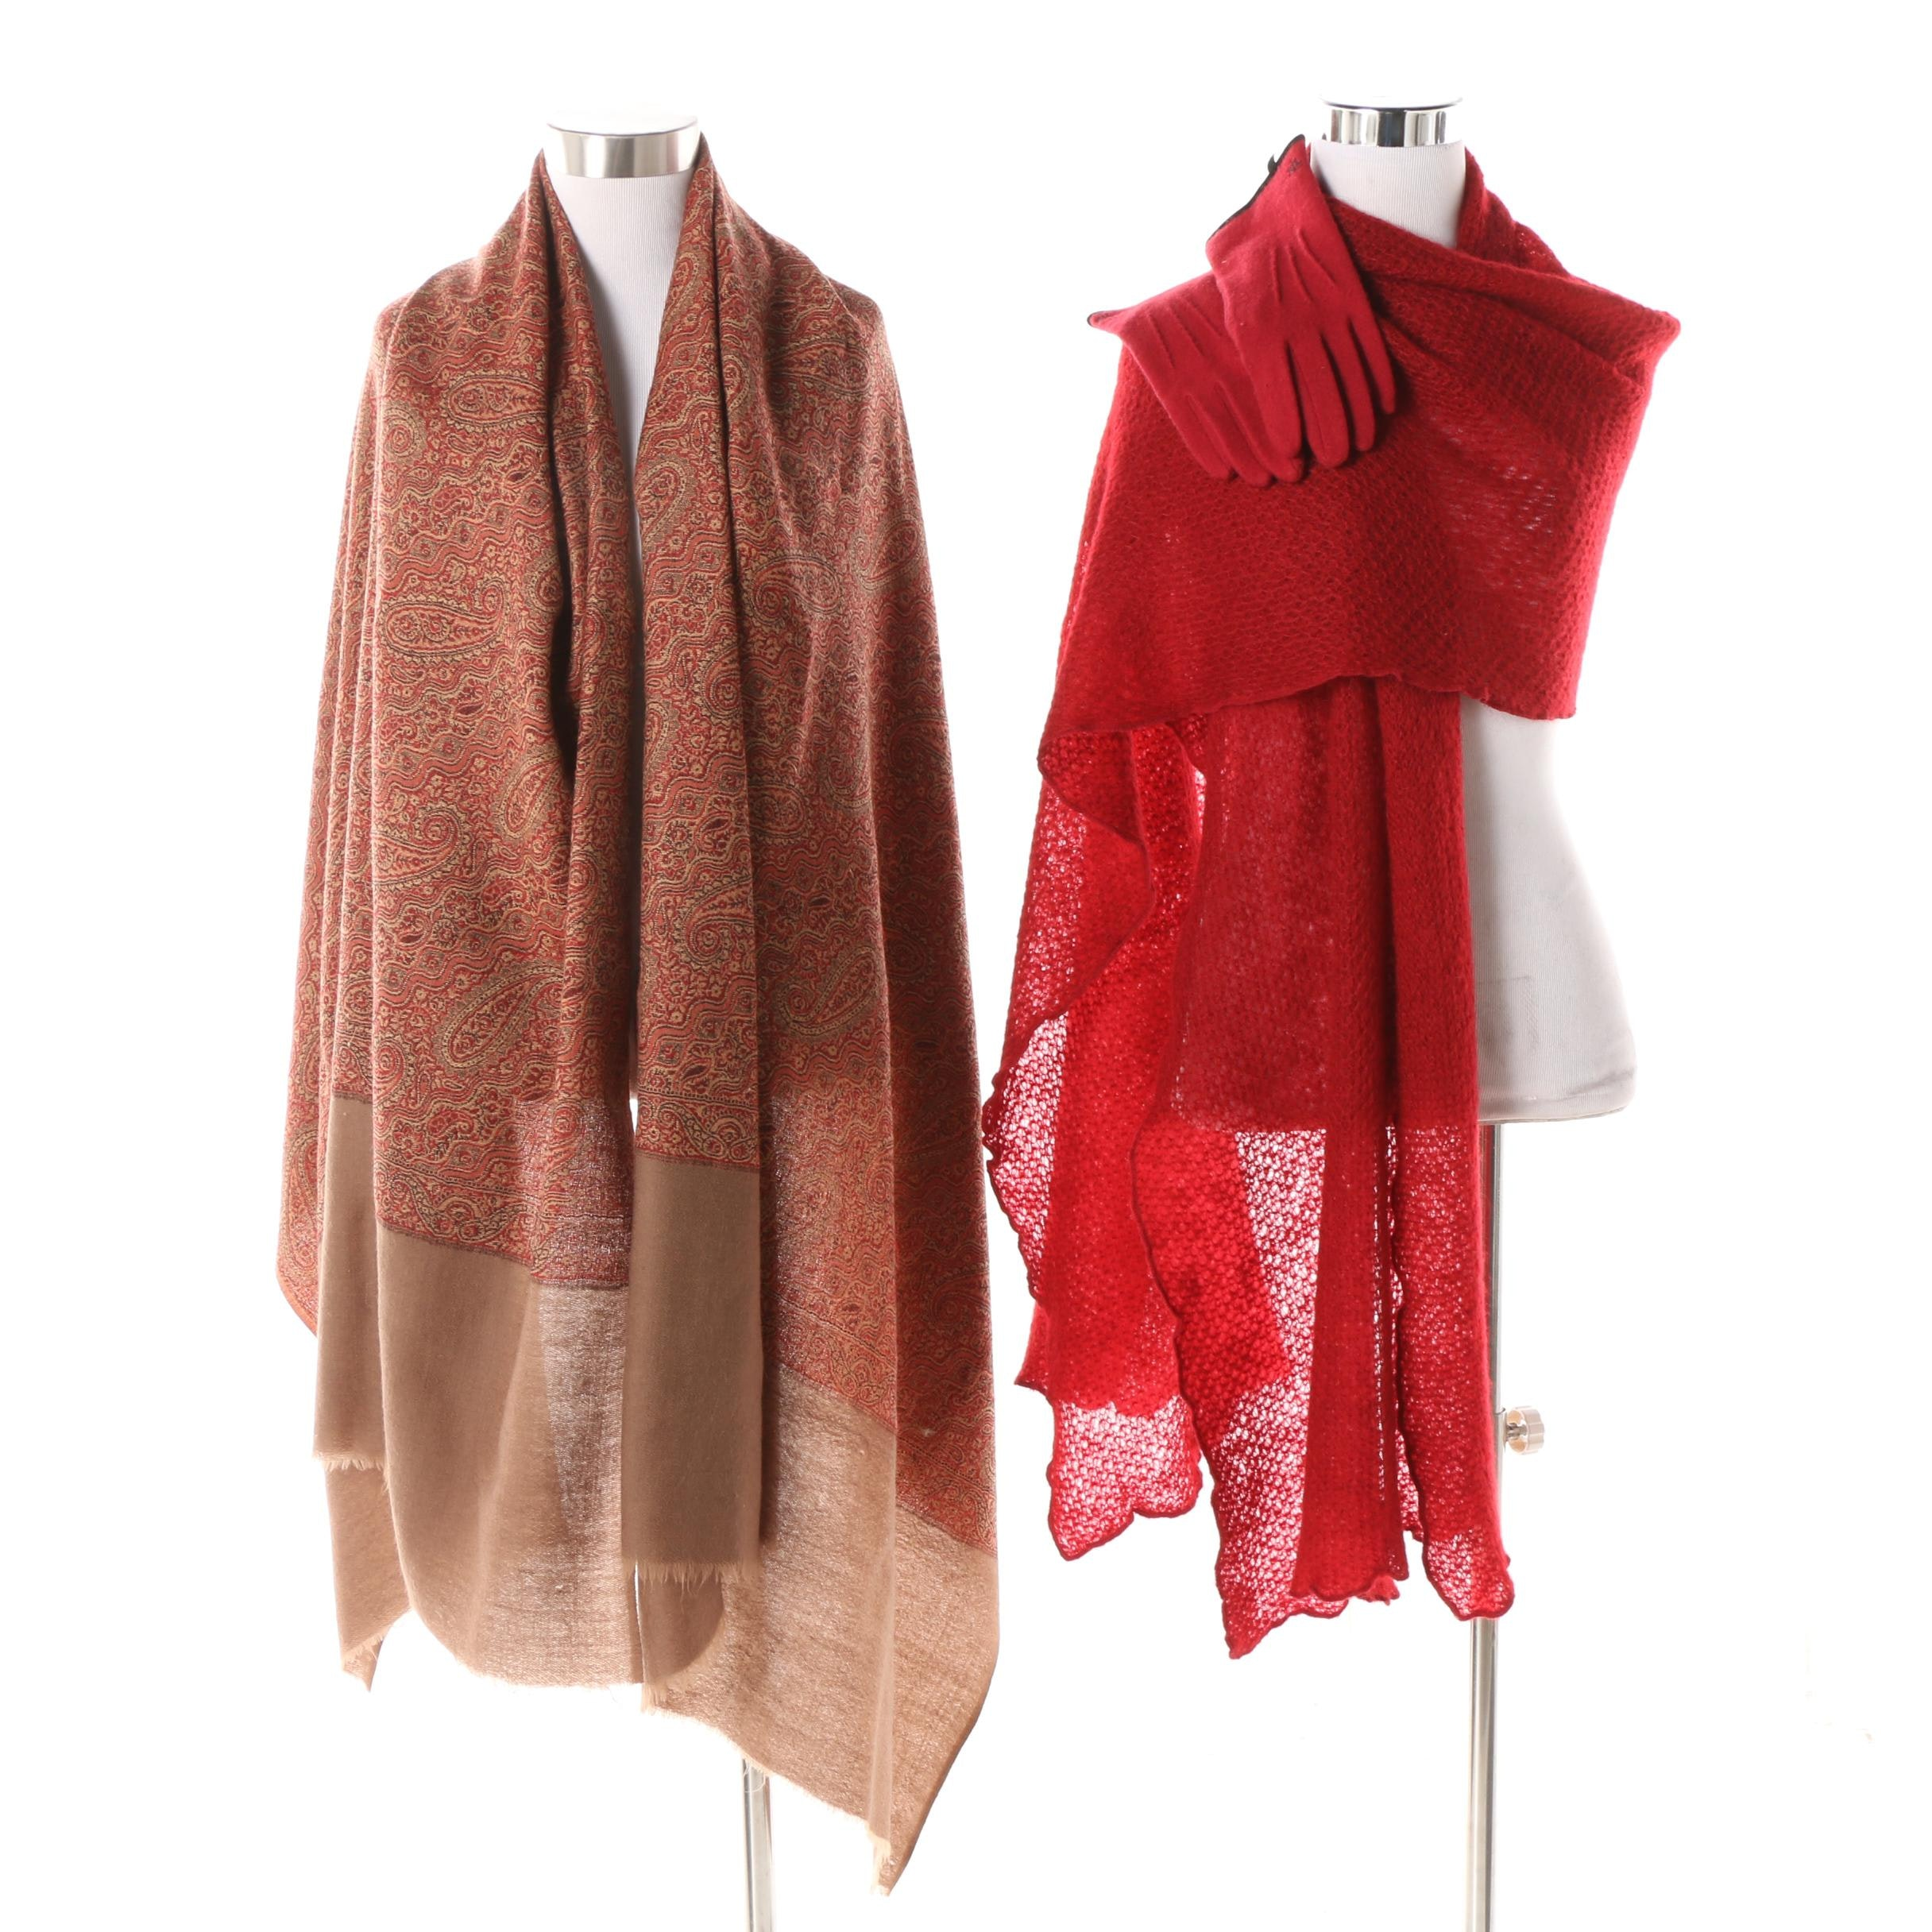 Lauren Ralph Lauren Red Knit Wrap and Wool Blend Gloves with Paisley Print Shawl